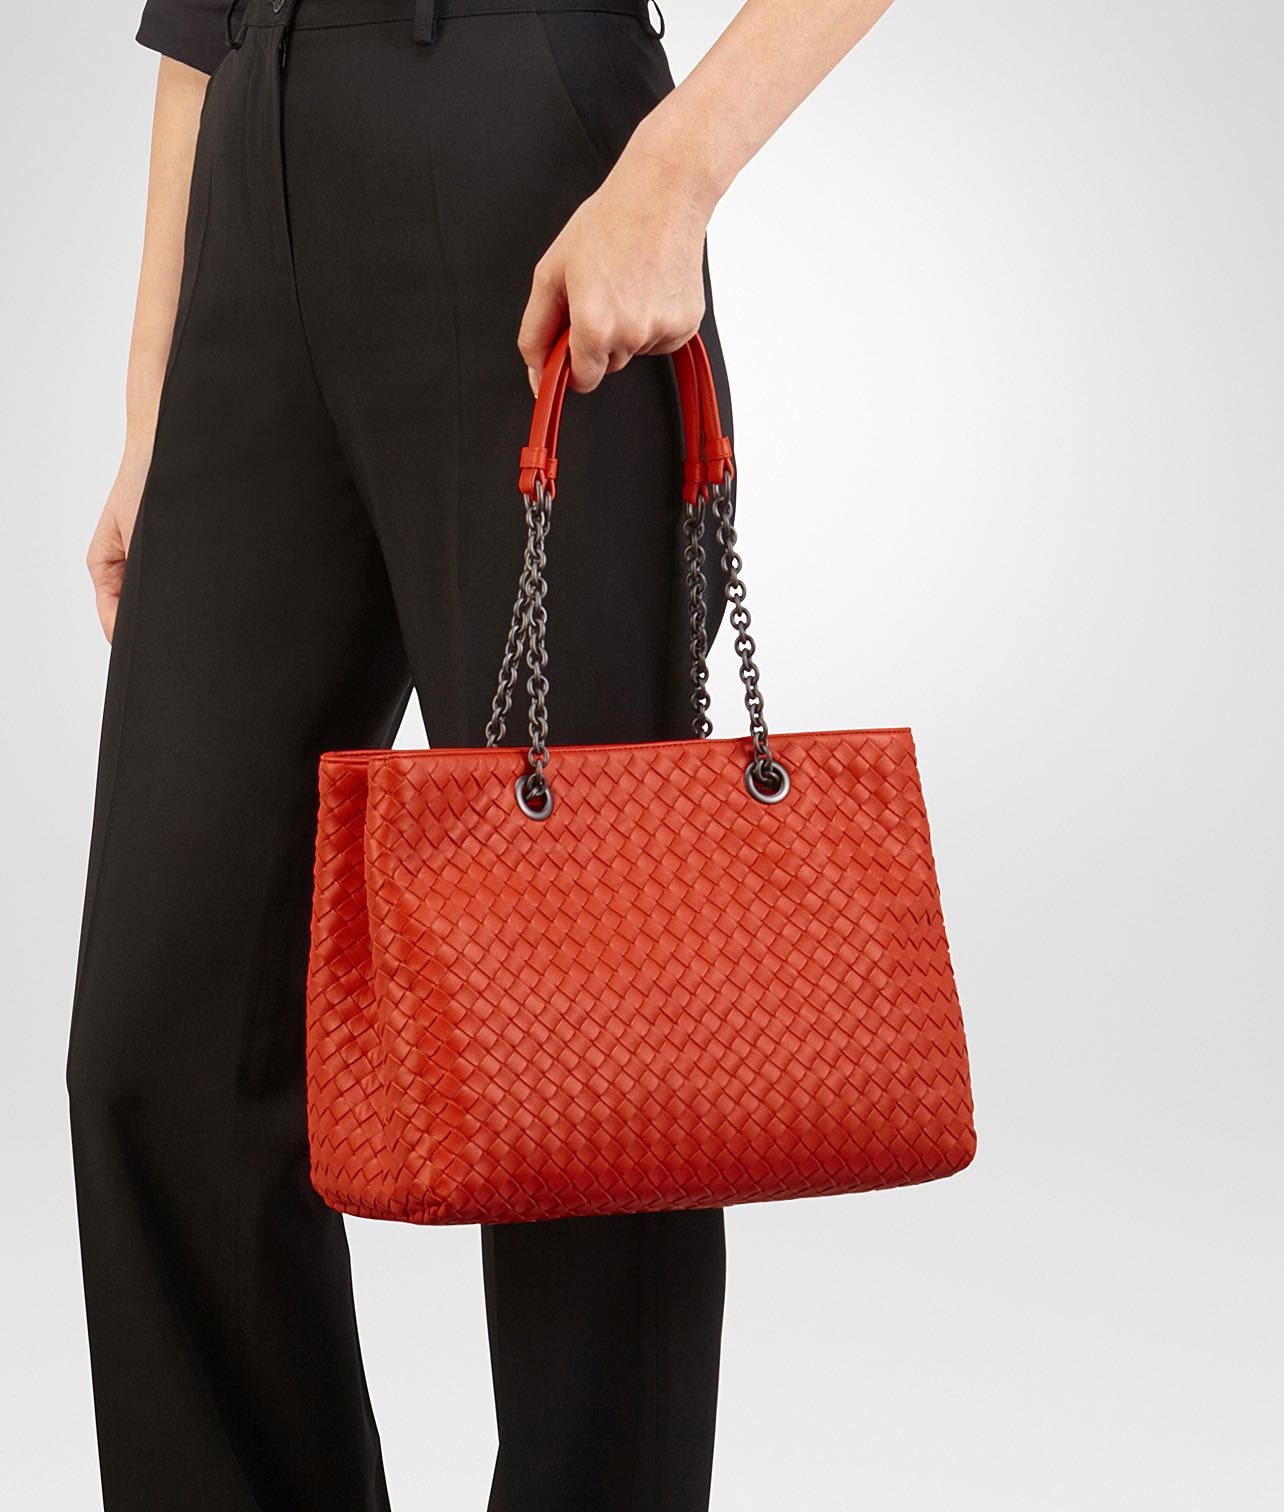 Bottega Veneta Medium Tote Bag in Red   Vesuvio Intrecciato Nappa ... e56226b30b398